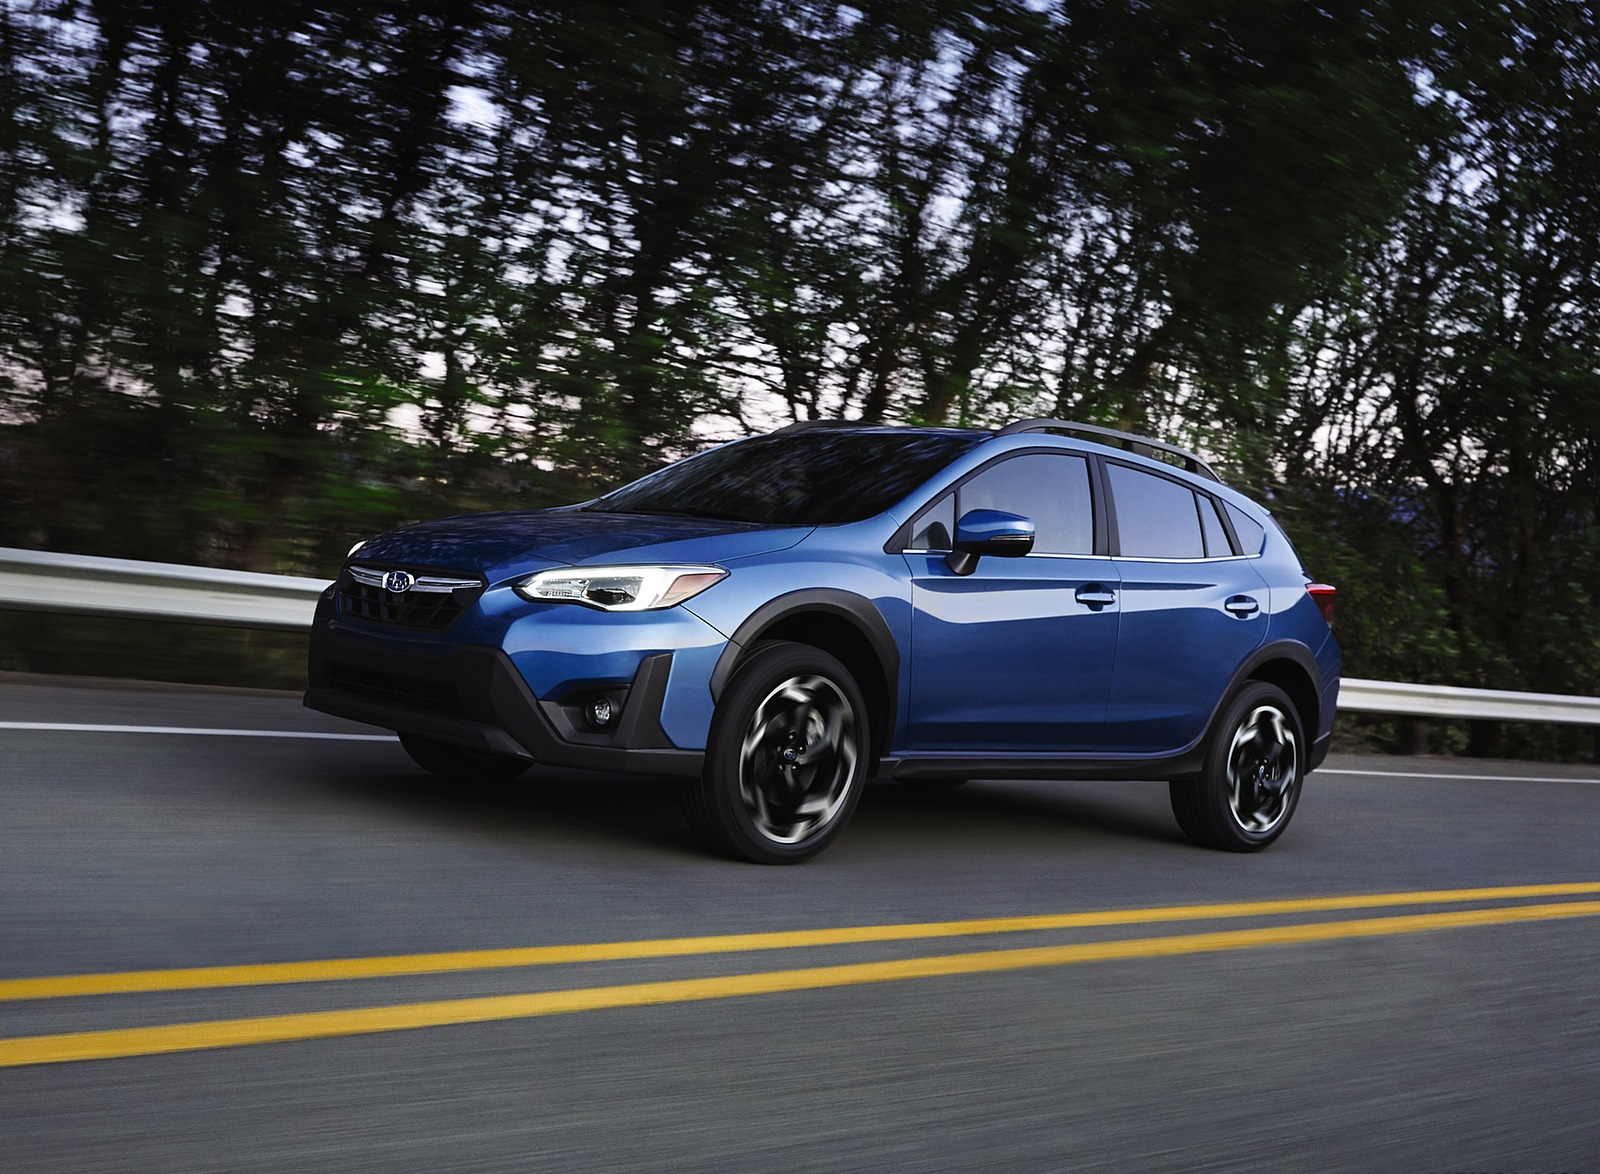 2021 Subaru Crosstrek Limited Front Three-Quarter Wallpapers (1)